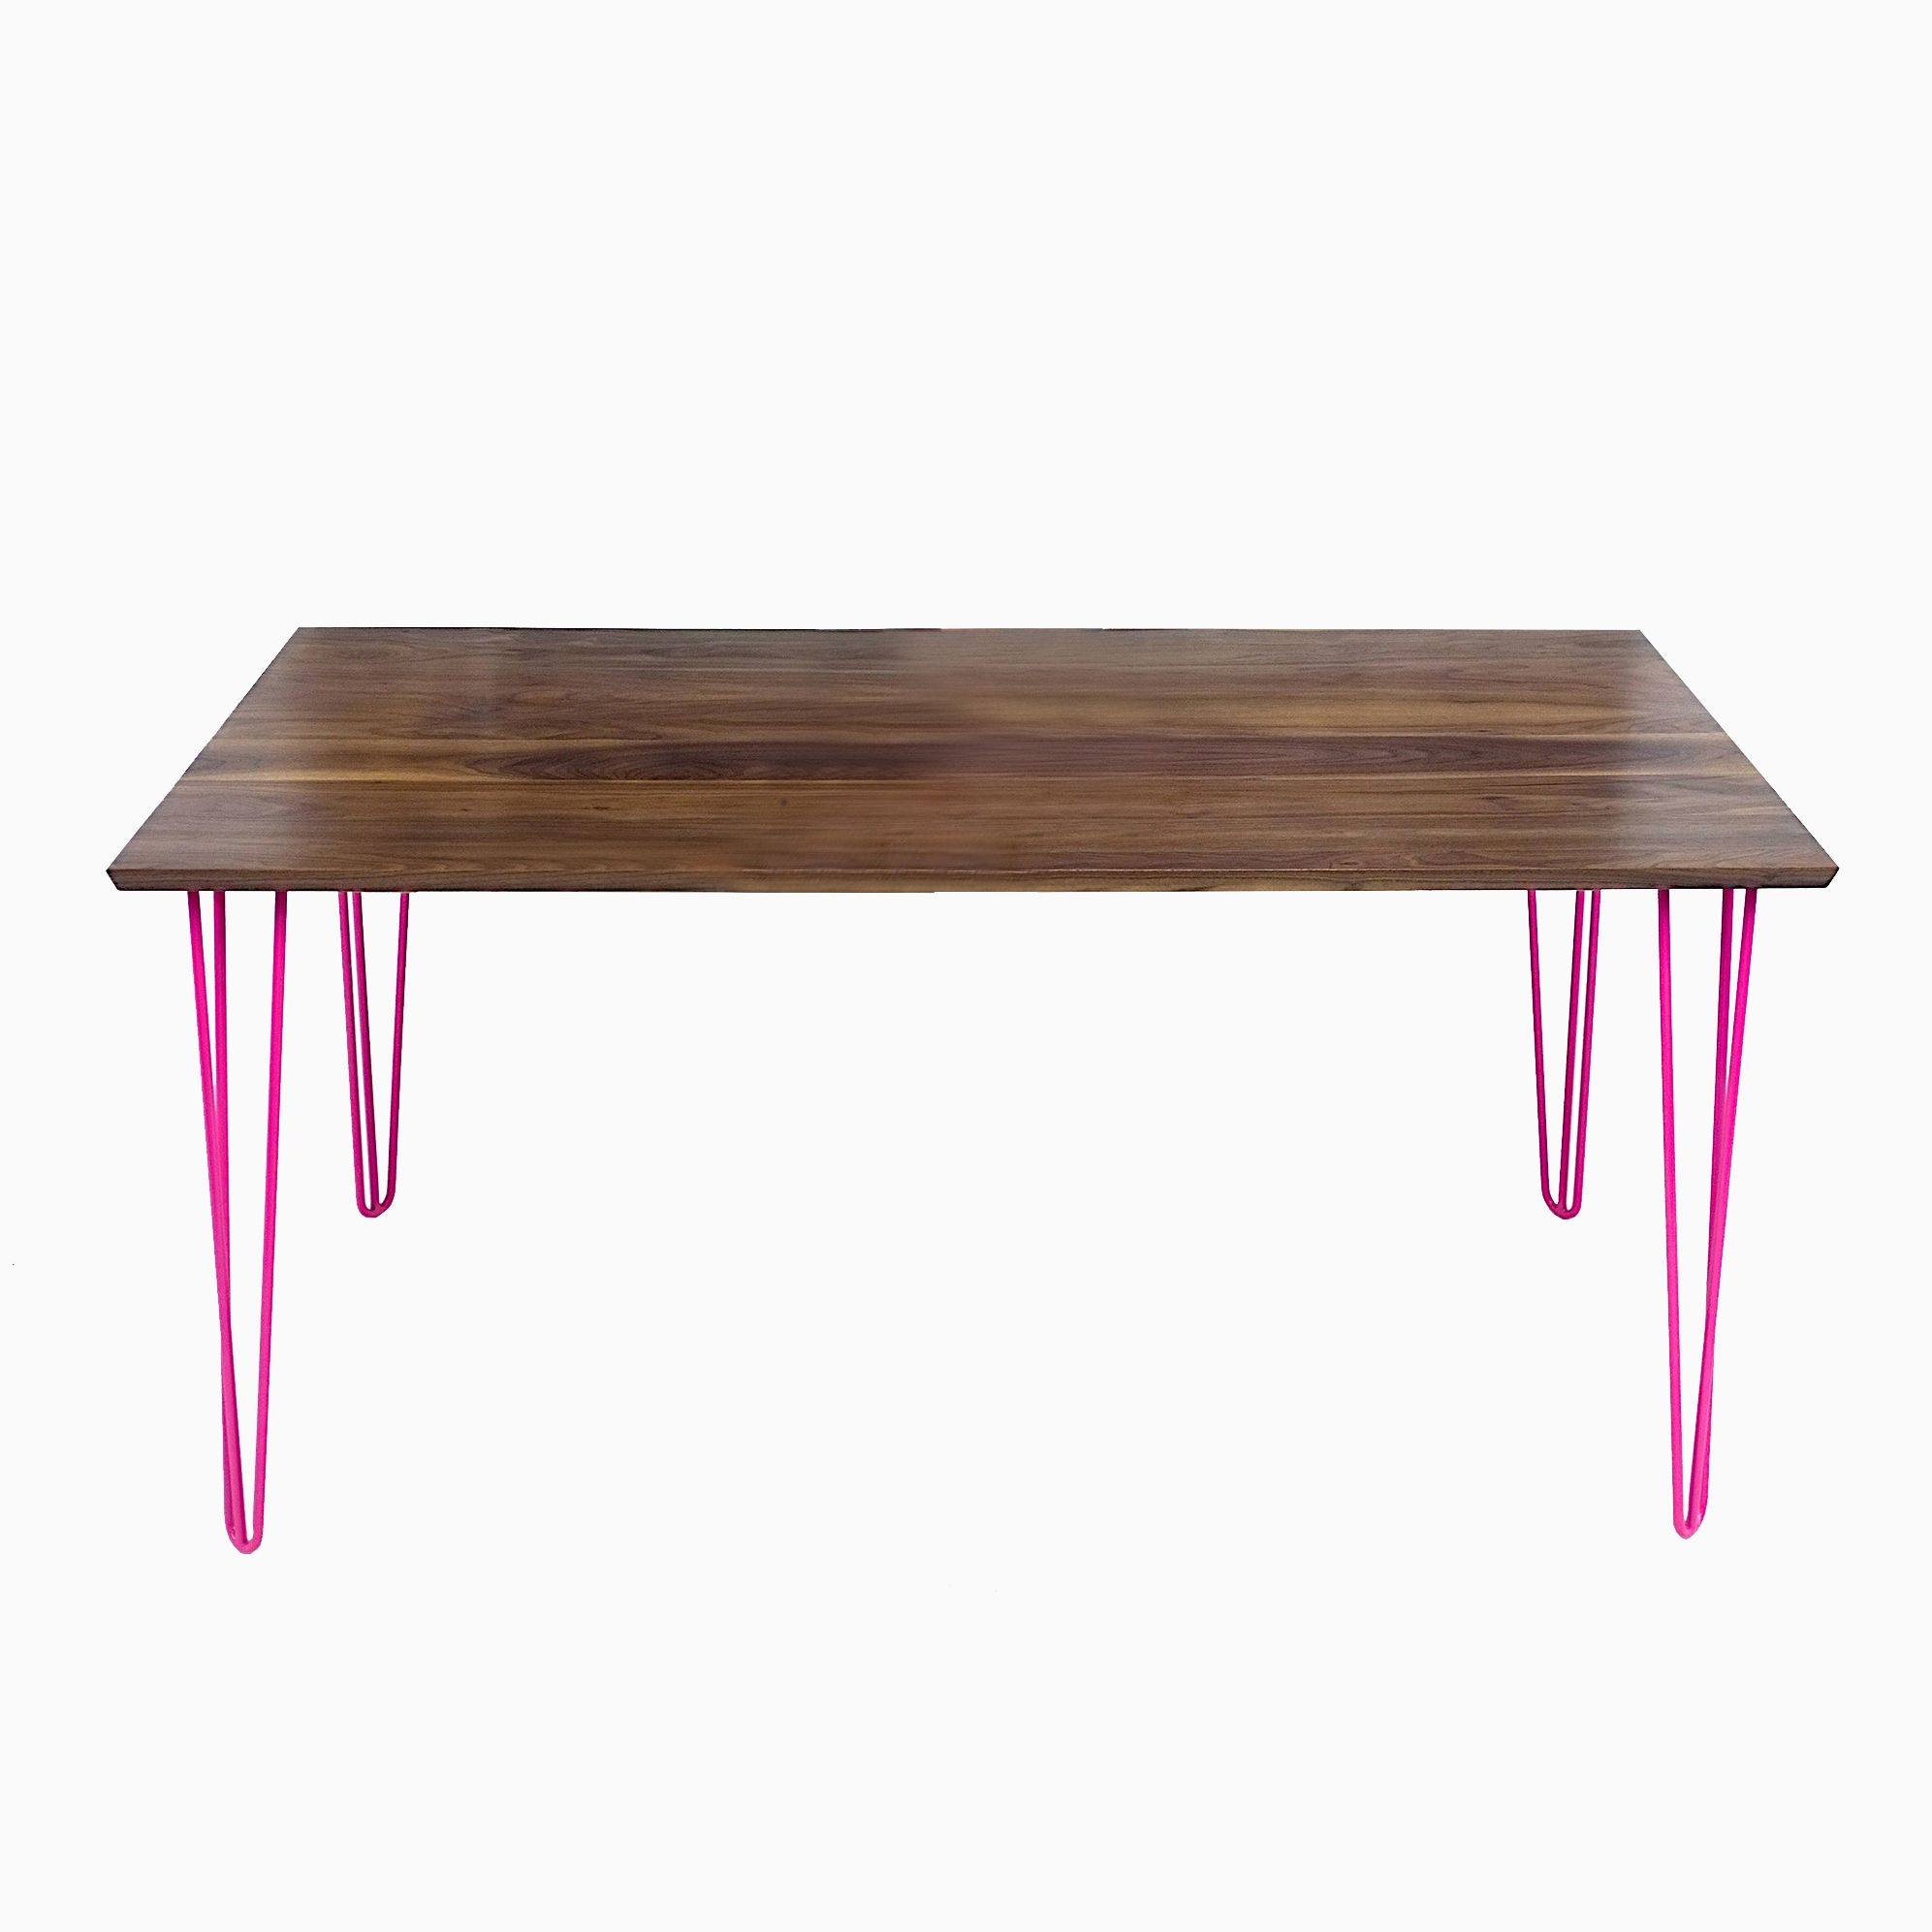 Buy A Hand Crafted Mid Century Modern Solid Walnut Table W